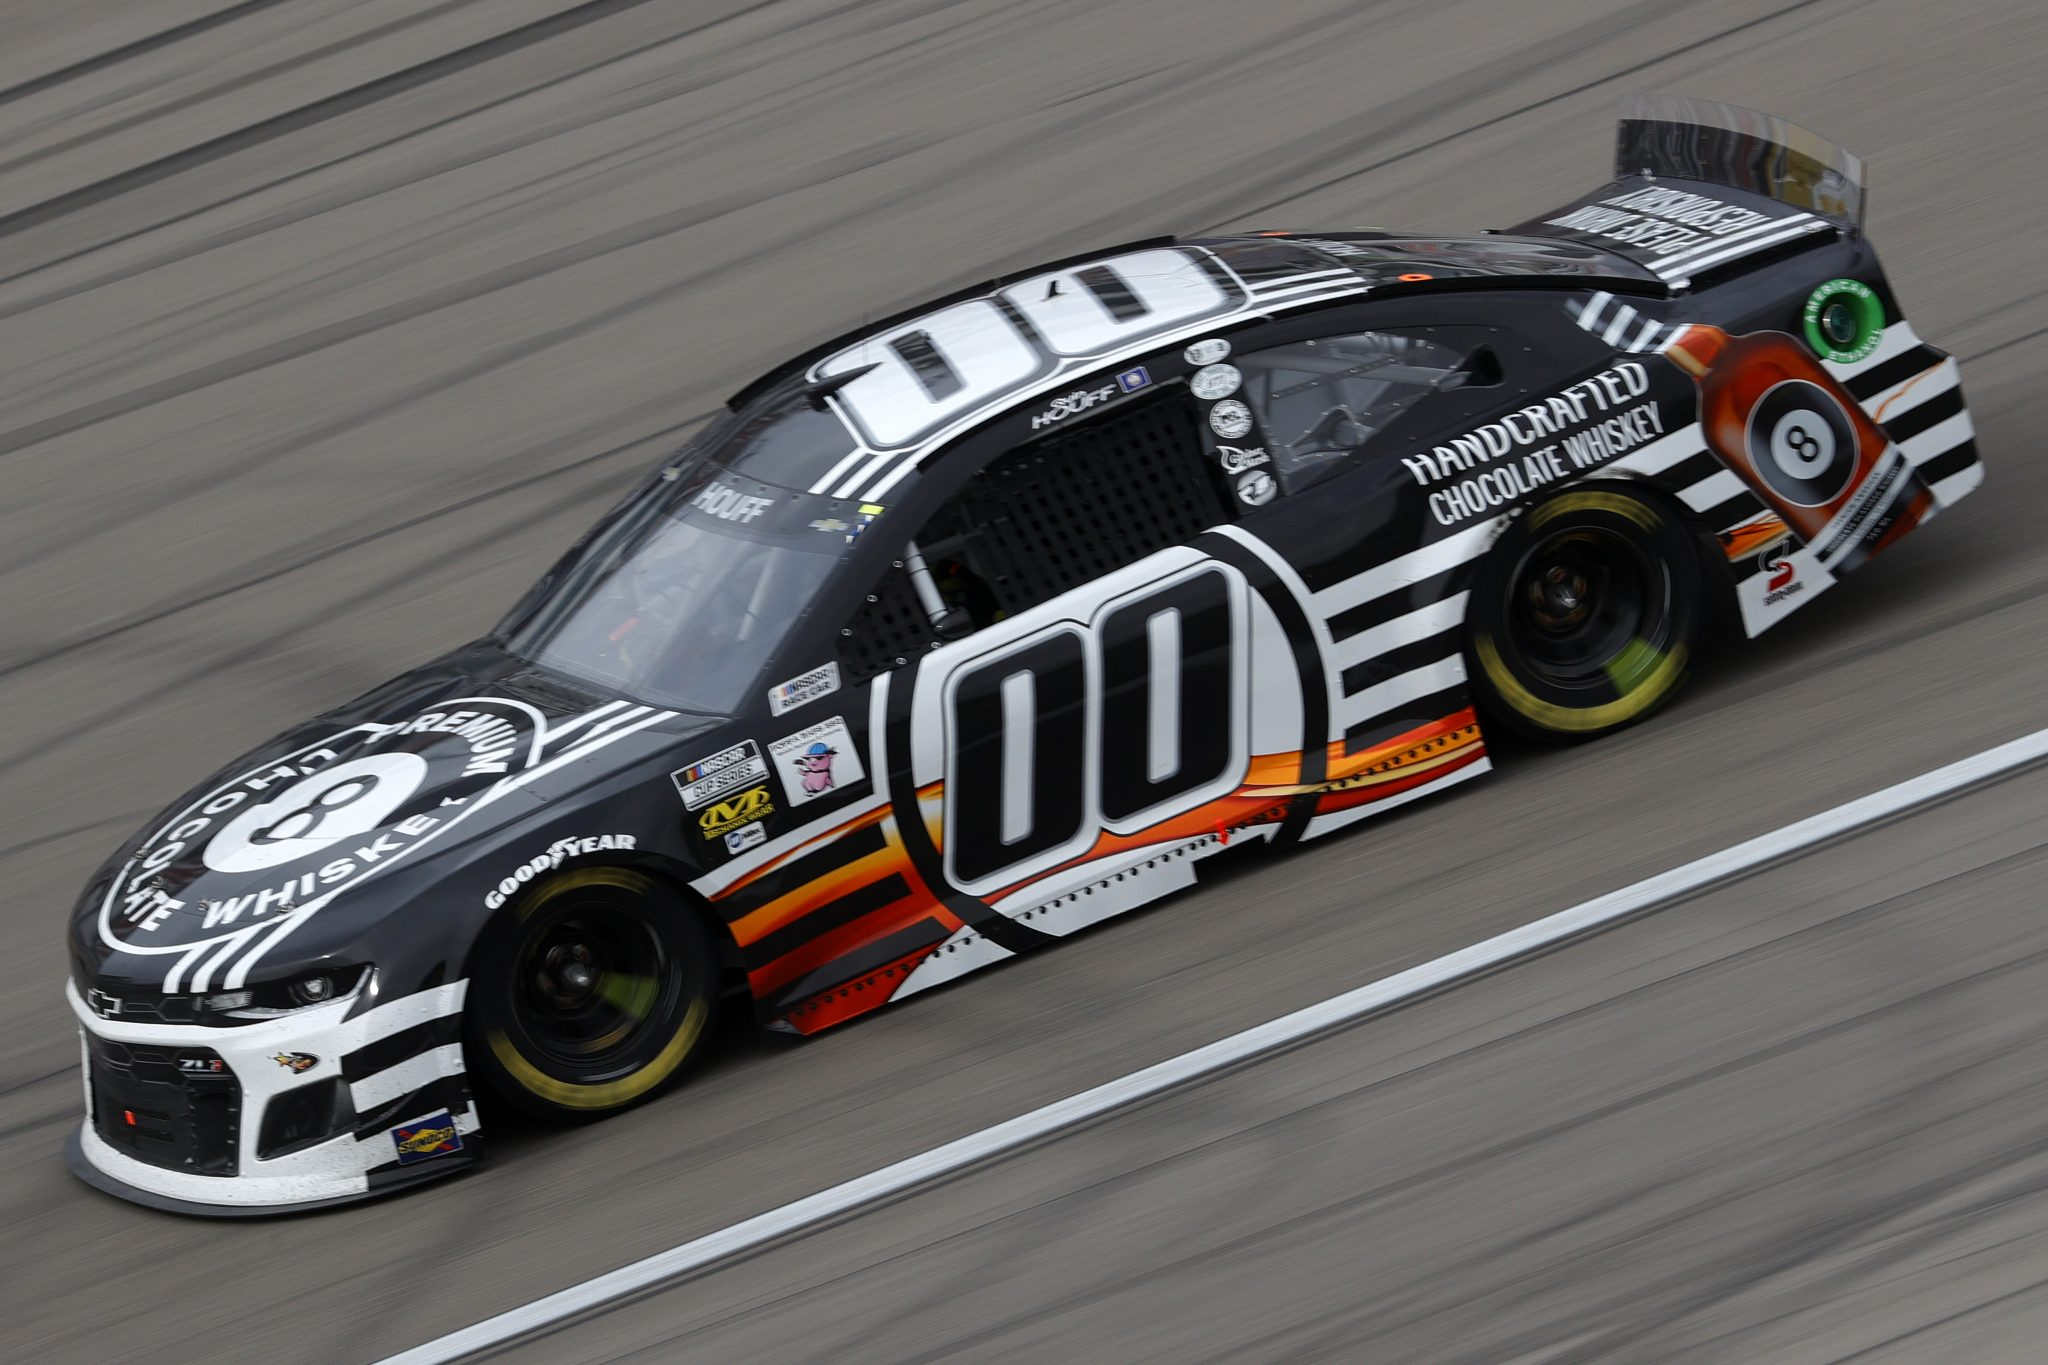 LAS VEGAS, NEVADA - MARCH 07: Quin Houff, driver of the #00 8 Ball Whiskey Chevrolet, drives during the NASCAR Cup Series Pennzoil 400 presented by Jiffy Lube at the Las Vegas Motor Speedway on March 07, 2021 in Las Vegas, Nevada. (Photo by Chris Graythen/Getty Images) | Getty Images